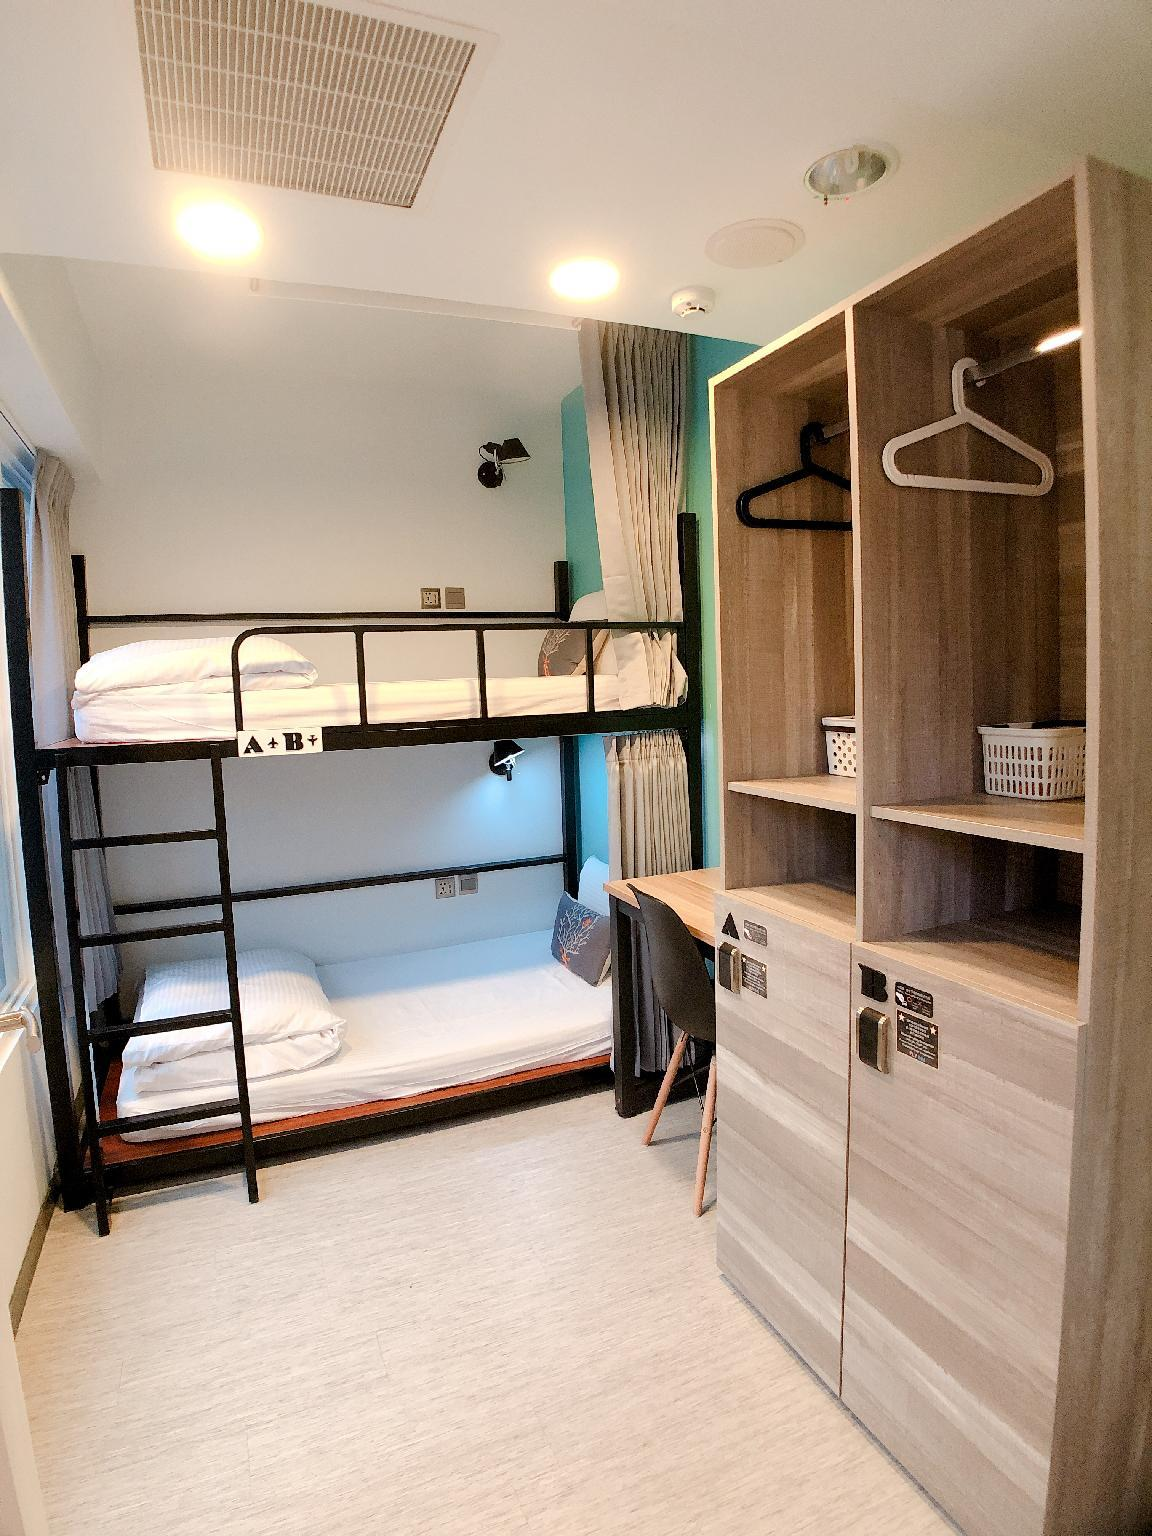 Bunk Bed Room (Shared Bathroom)